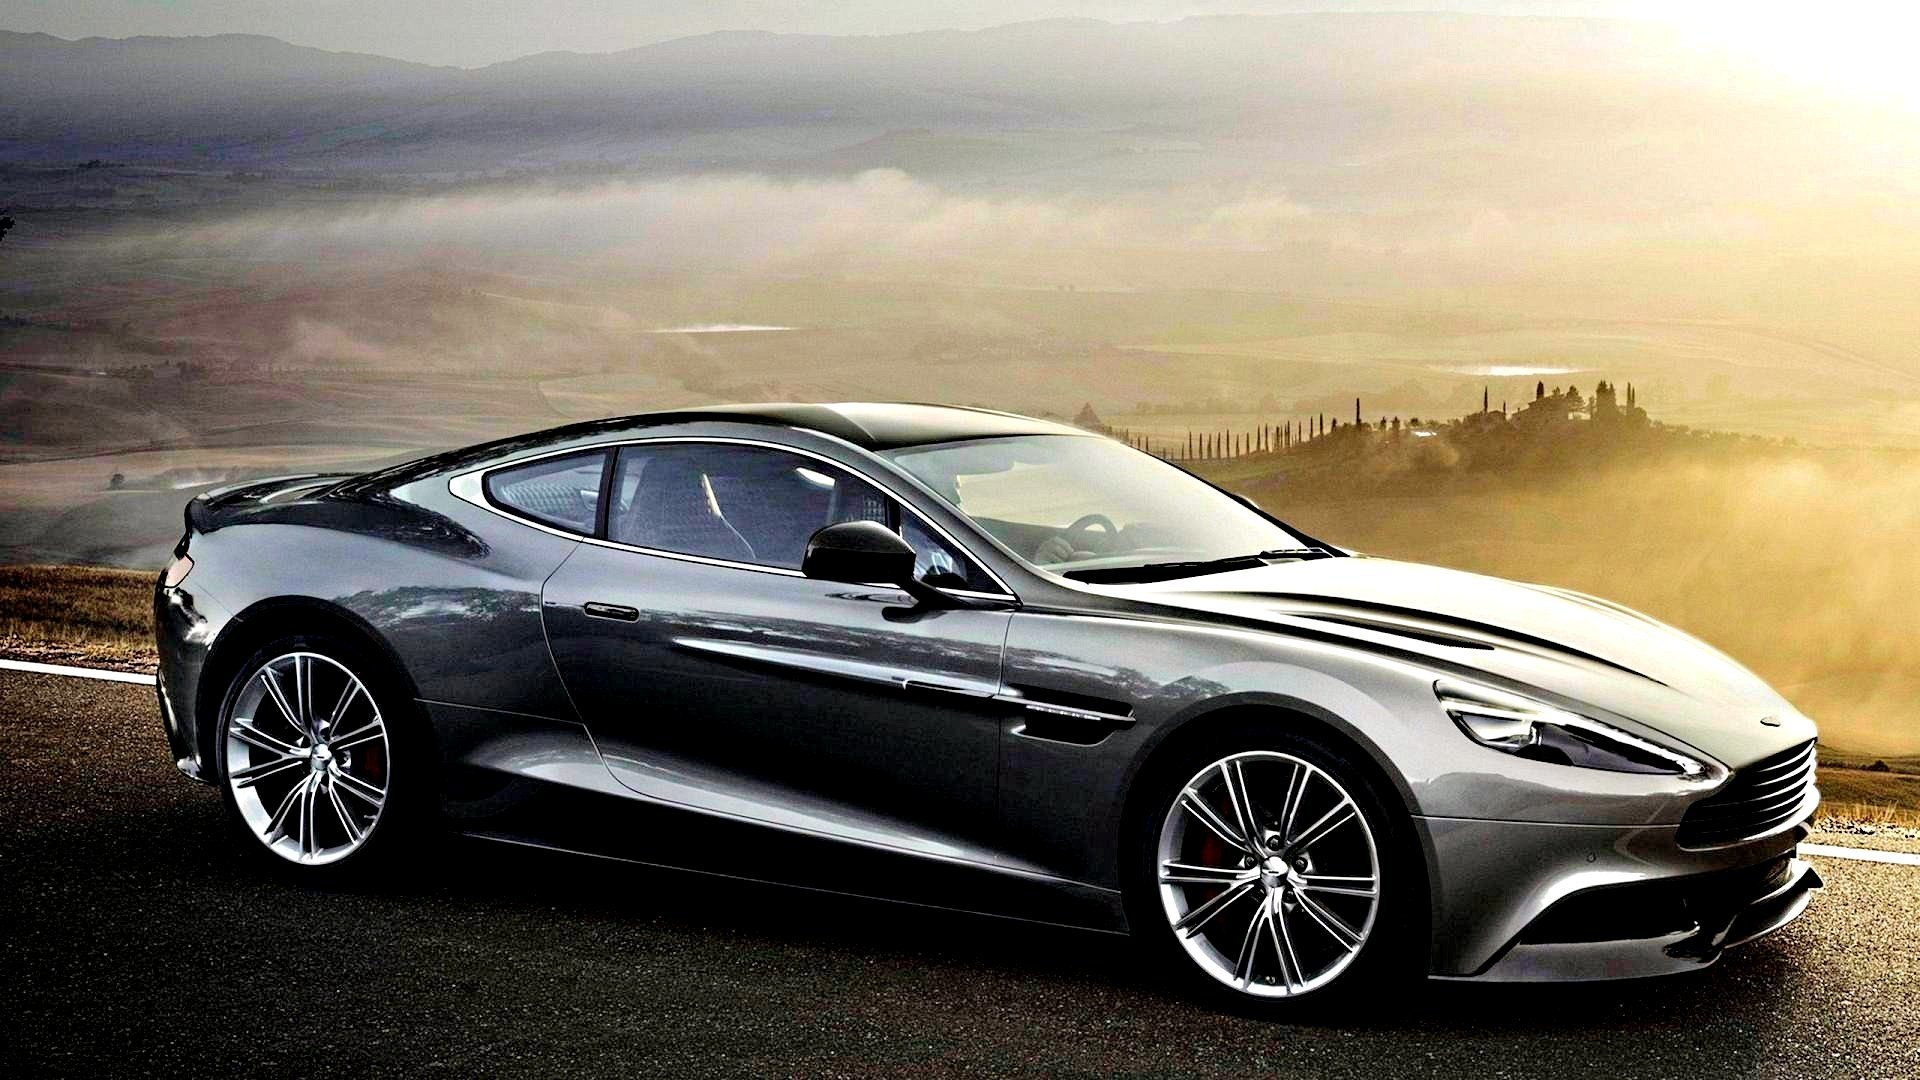 73 Aston Martin Vanquish Hd Wallpapers Background Images Wallpaper Abyss Page 3